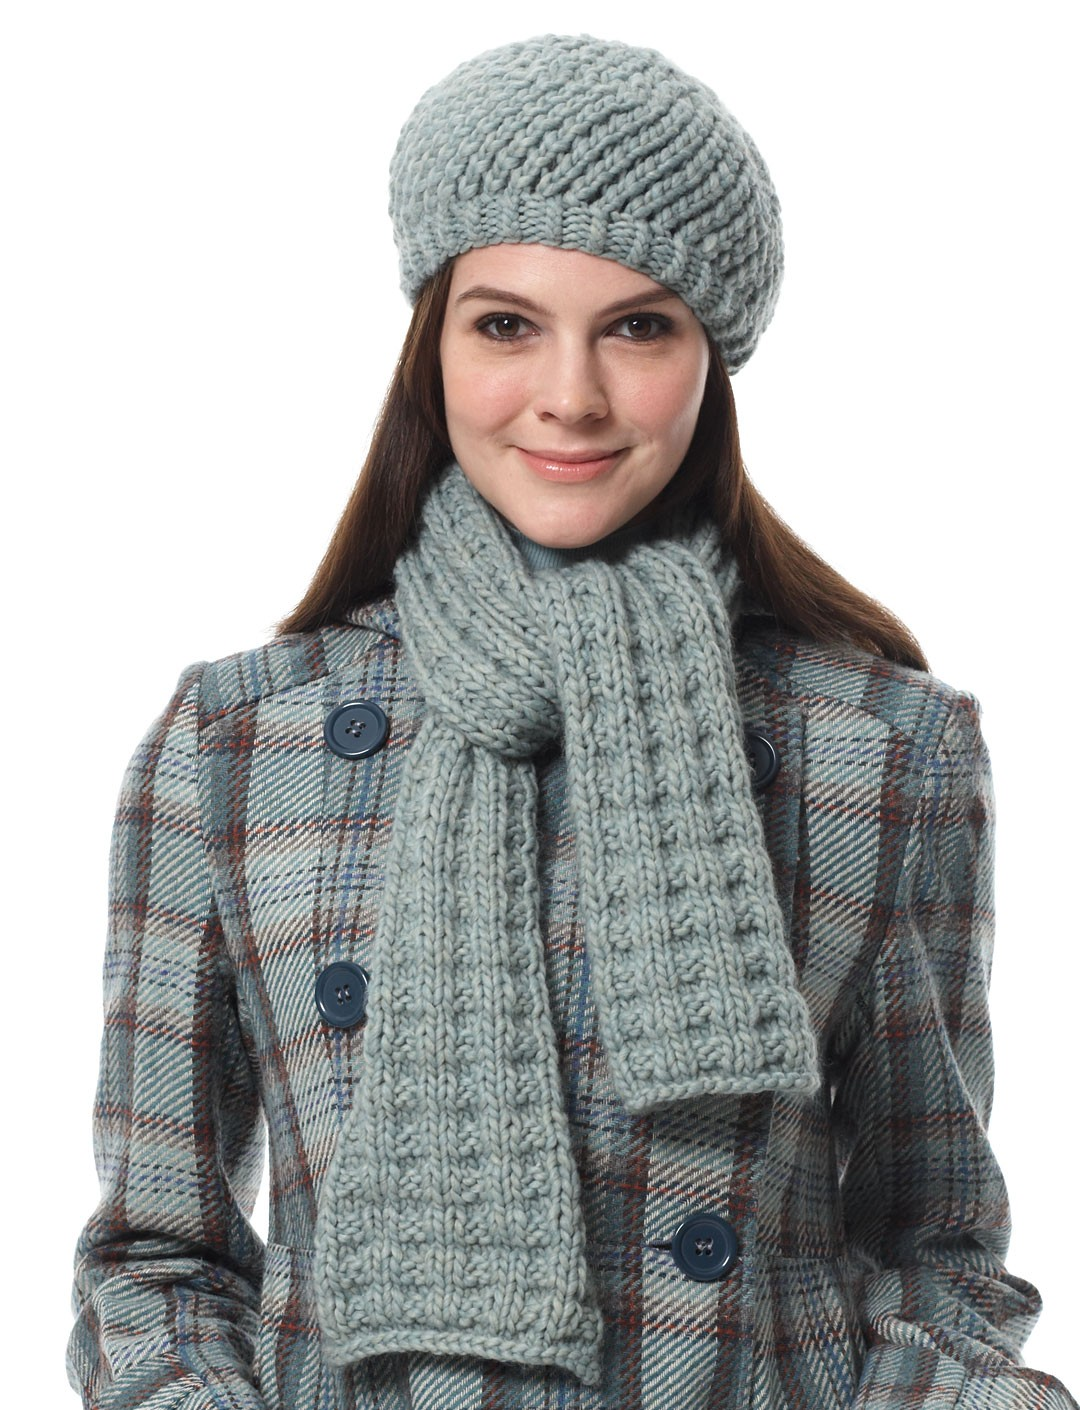 Bernat Knitting Patterns Free : Bernat, Scarf and Hat (Pattern) Yarnspirations